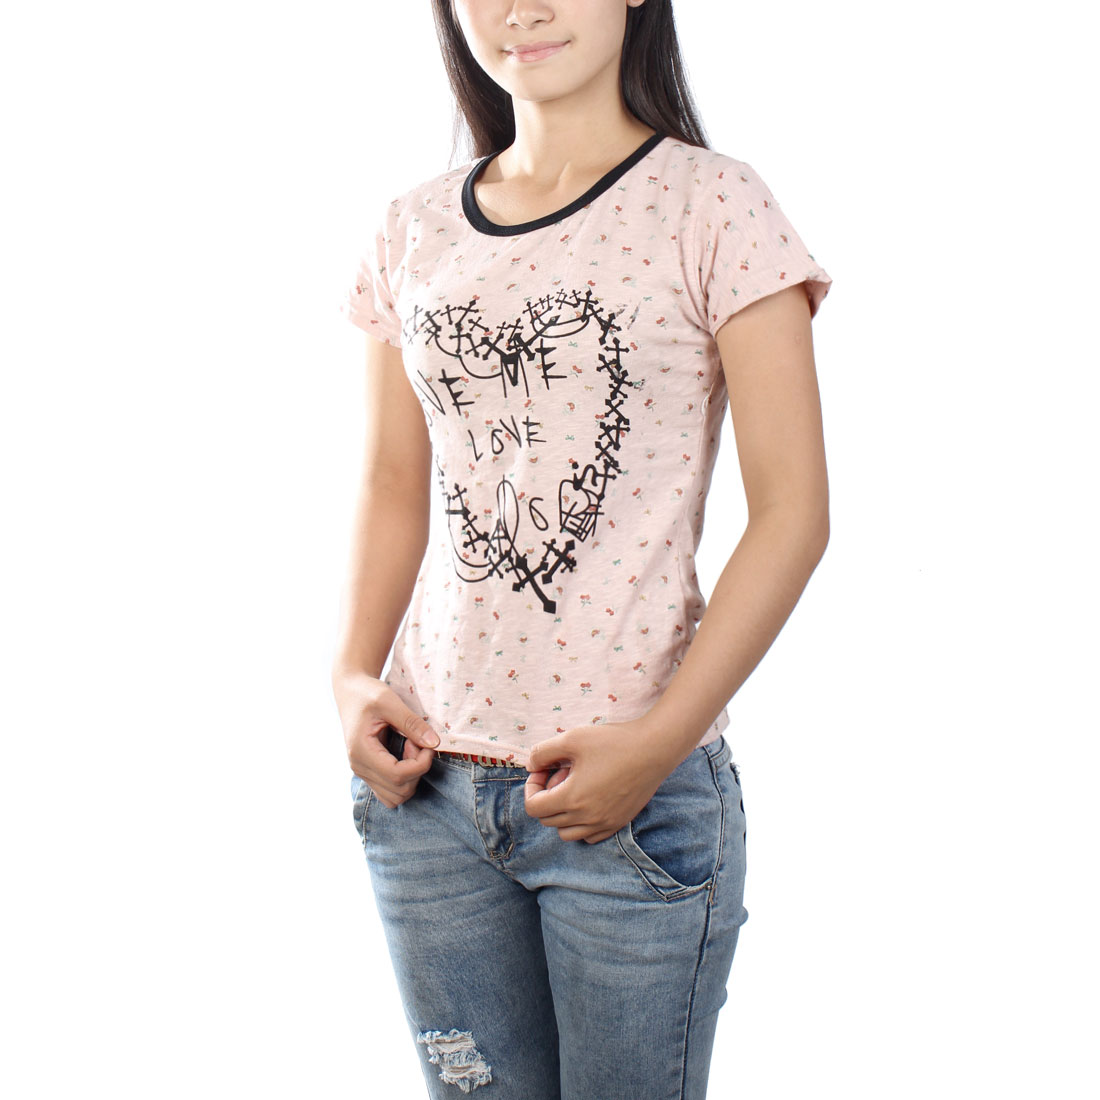 Ladies Round Neck Black Letters Print Casual T-Shirt Pale Pink XS